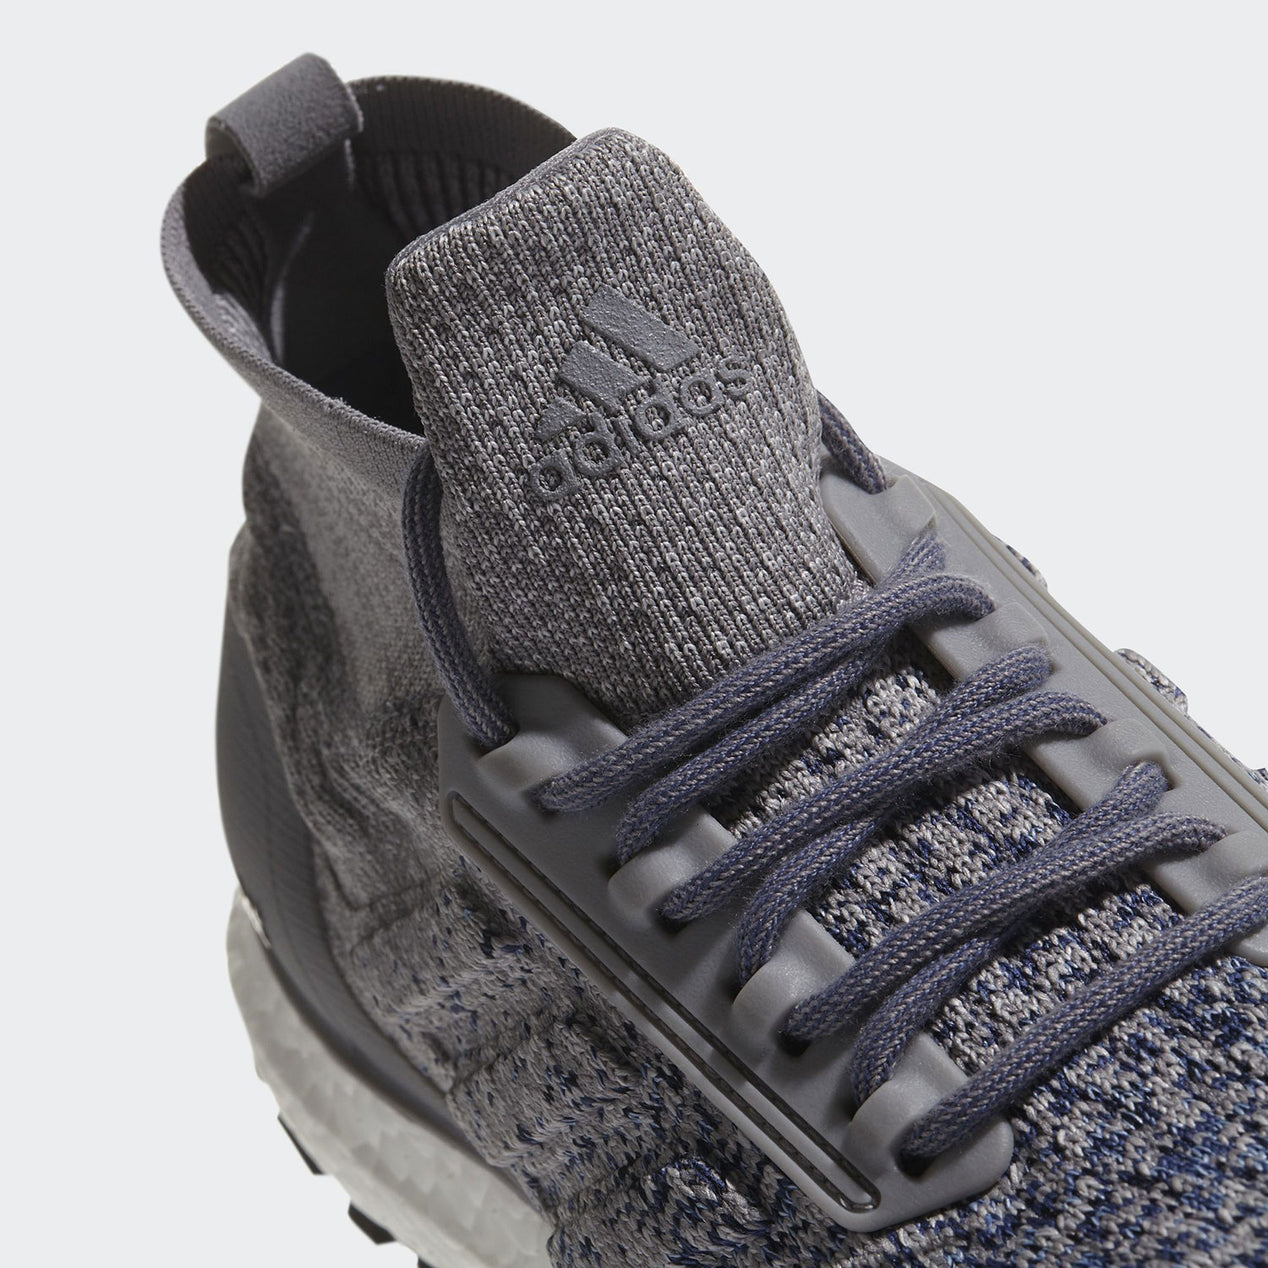 31cf0324234fa ... Three - Grey Two - Noble Indigo · UltraBOOST All Terrain Running Shoes  - Men s thumb · UltraBOOST All Terrain Running Shoes - Men s thumb ...